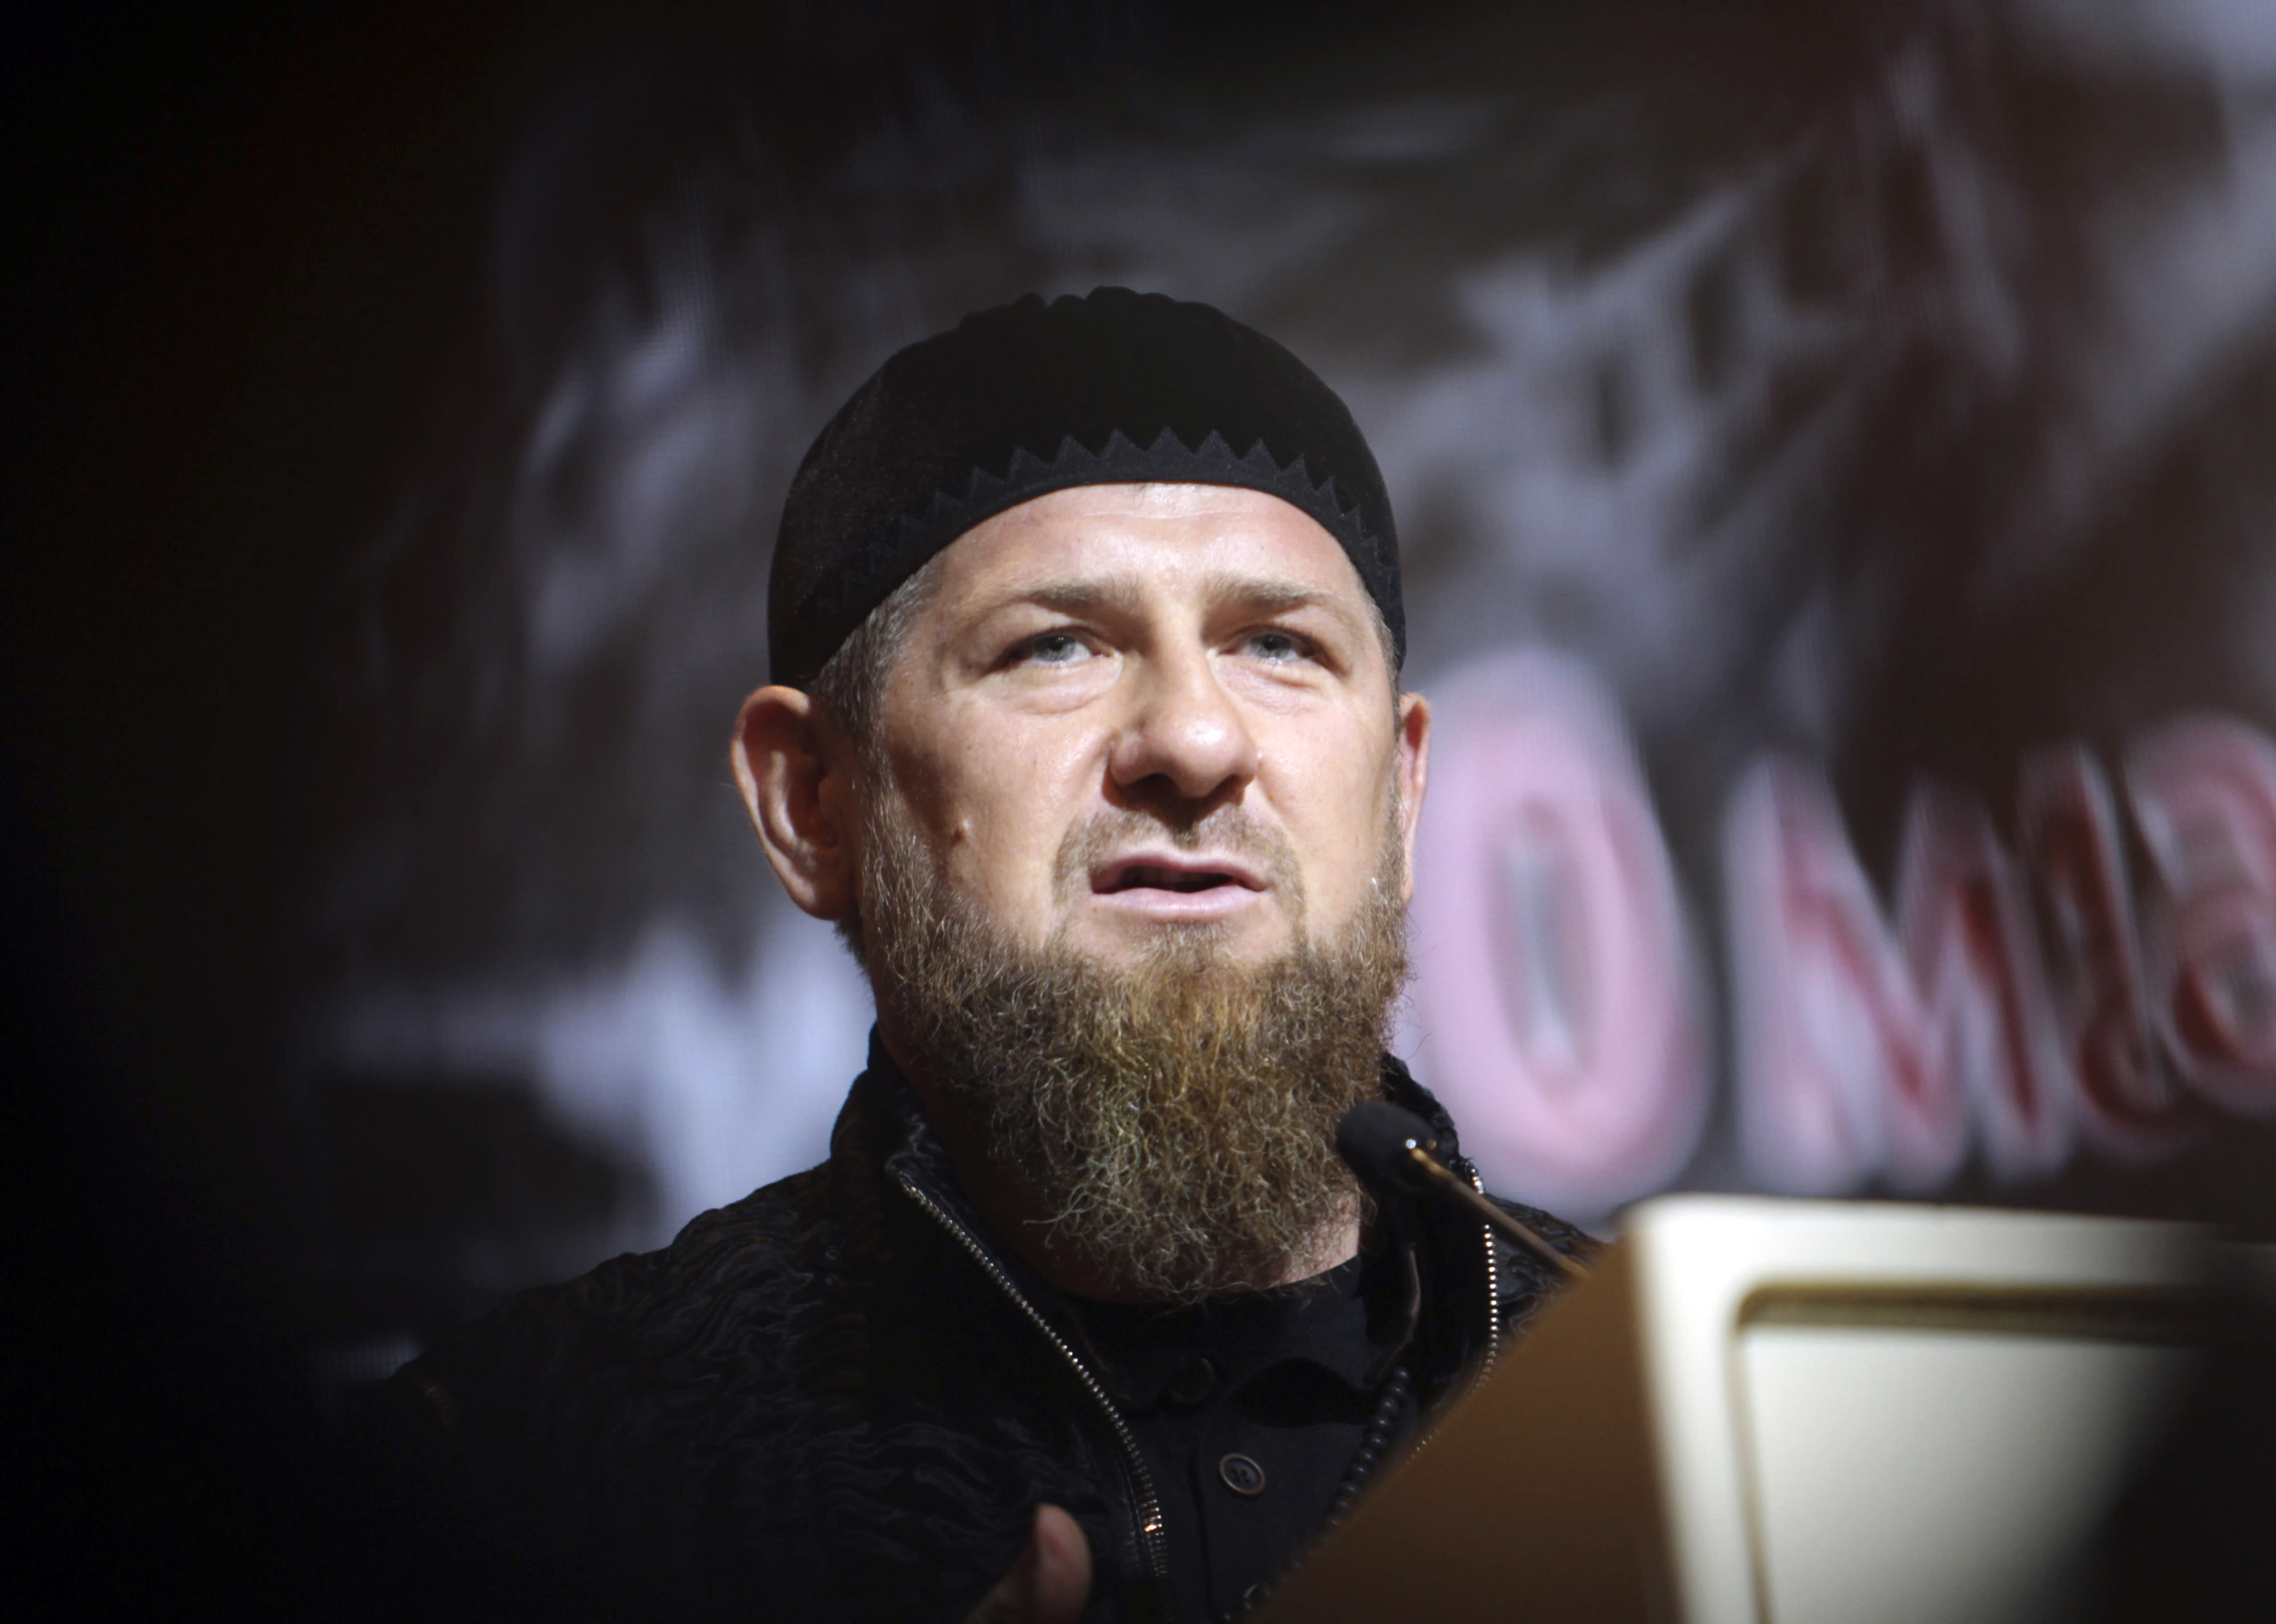 """FILE - In this Friday, May 10, 2019 file photo, Chechnya's regional leader Ramzan Kadyrov speaks during a meeting in Grozny, Russia. Ramzan Kadyrov claimed on his blog Thursday, July 9, 2020 that the ethnic Chechen who was shot dead in a Vienna suburb over the weekend fell victim to """"special services working against Russia and myself."""" He rejected the allegations of his involvement in the killing, saying that the killing in Vienna and earlier slayings of ethnic Chechens in Europe were performed by foreign secret agents to compromise him and tarnish Russia's image. (AP Photo/Musa Sadulayev, file)"""